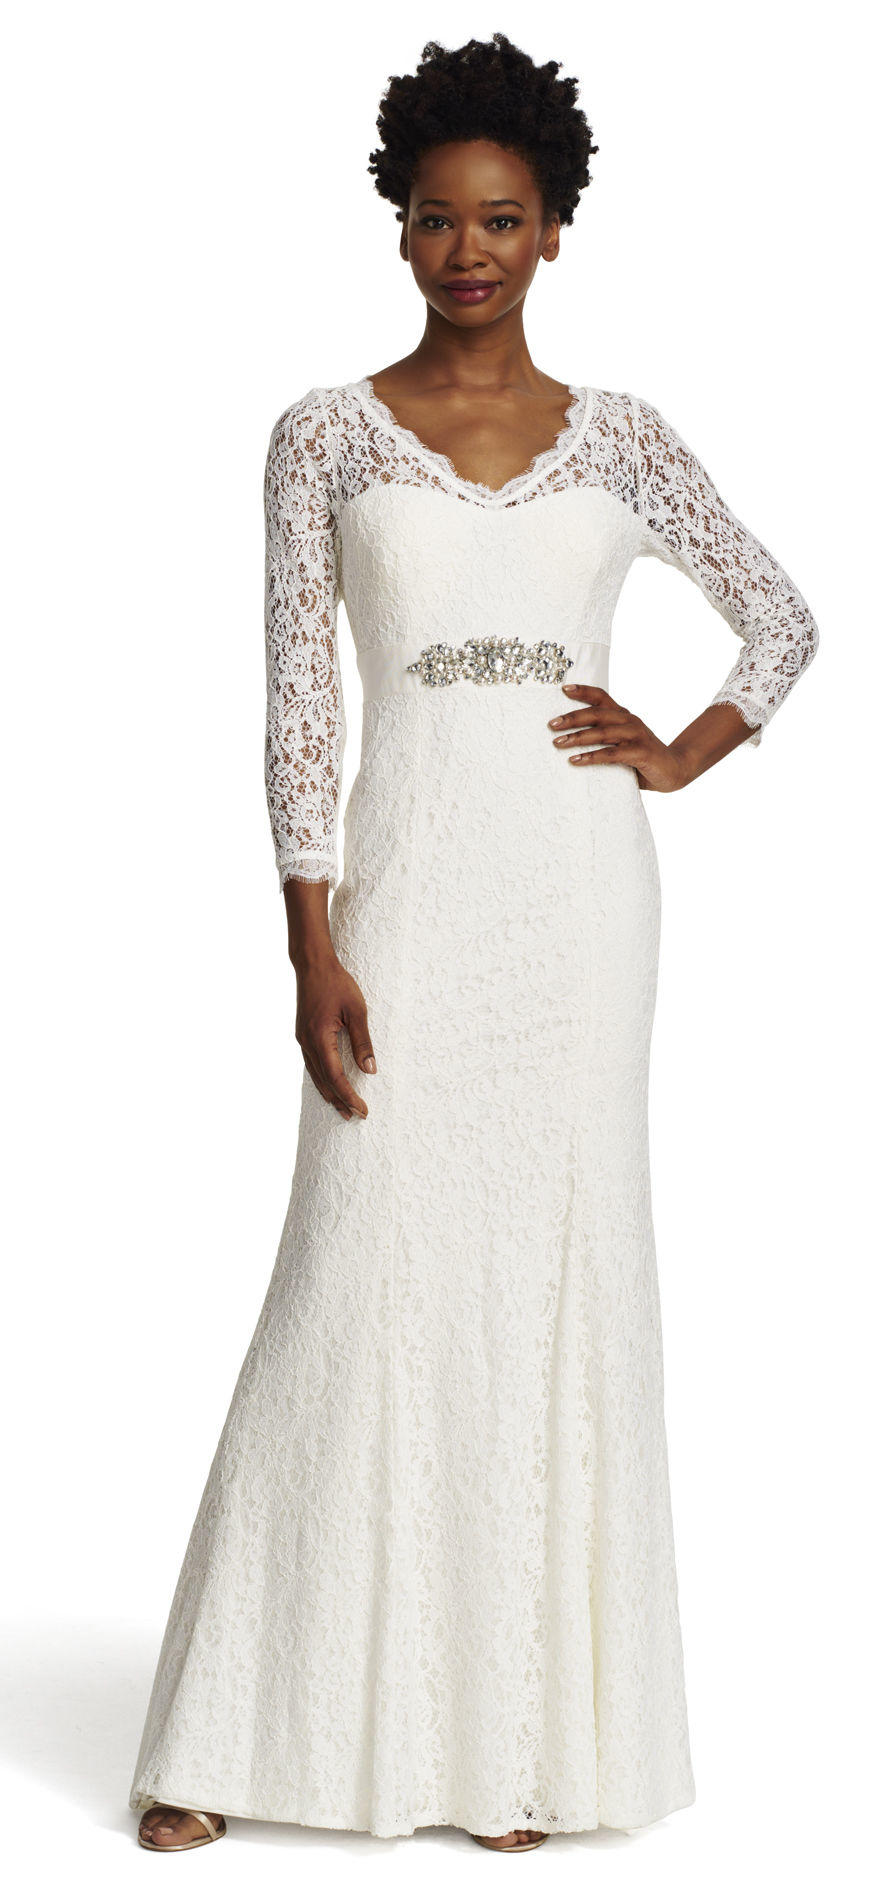 Long Sleeve Lace Mermaid Gown with Train from Adrianna Papell